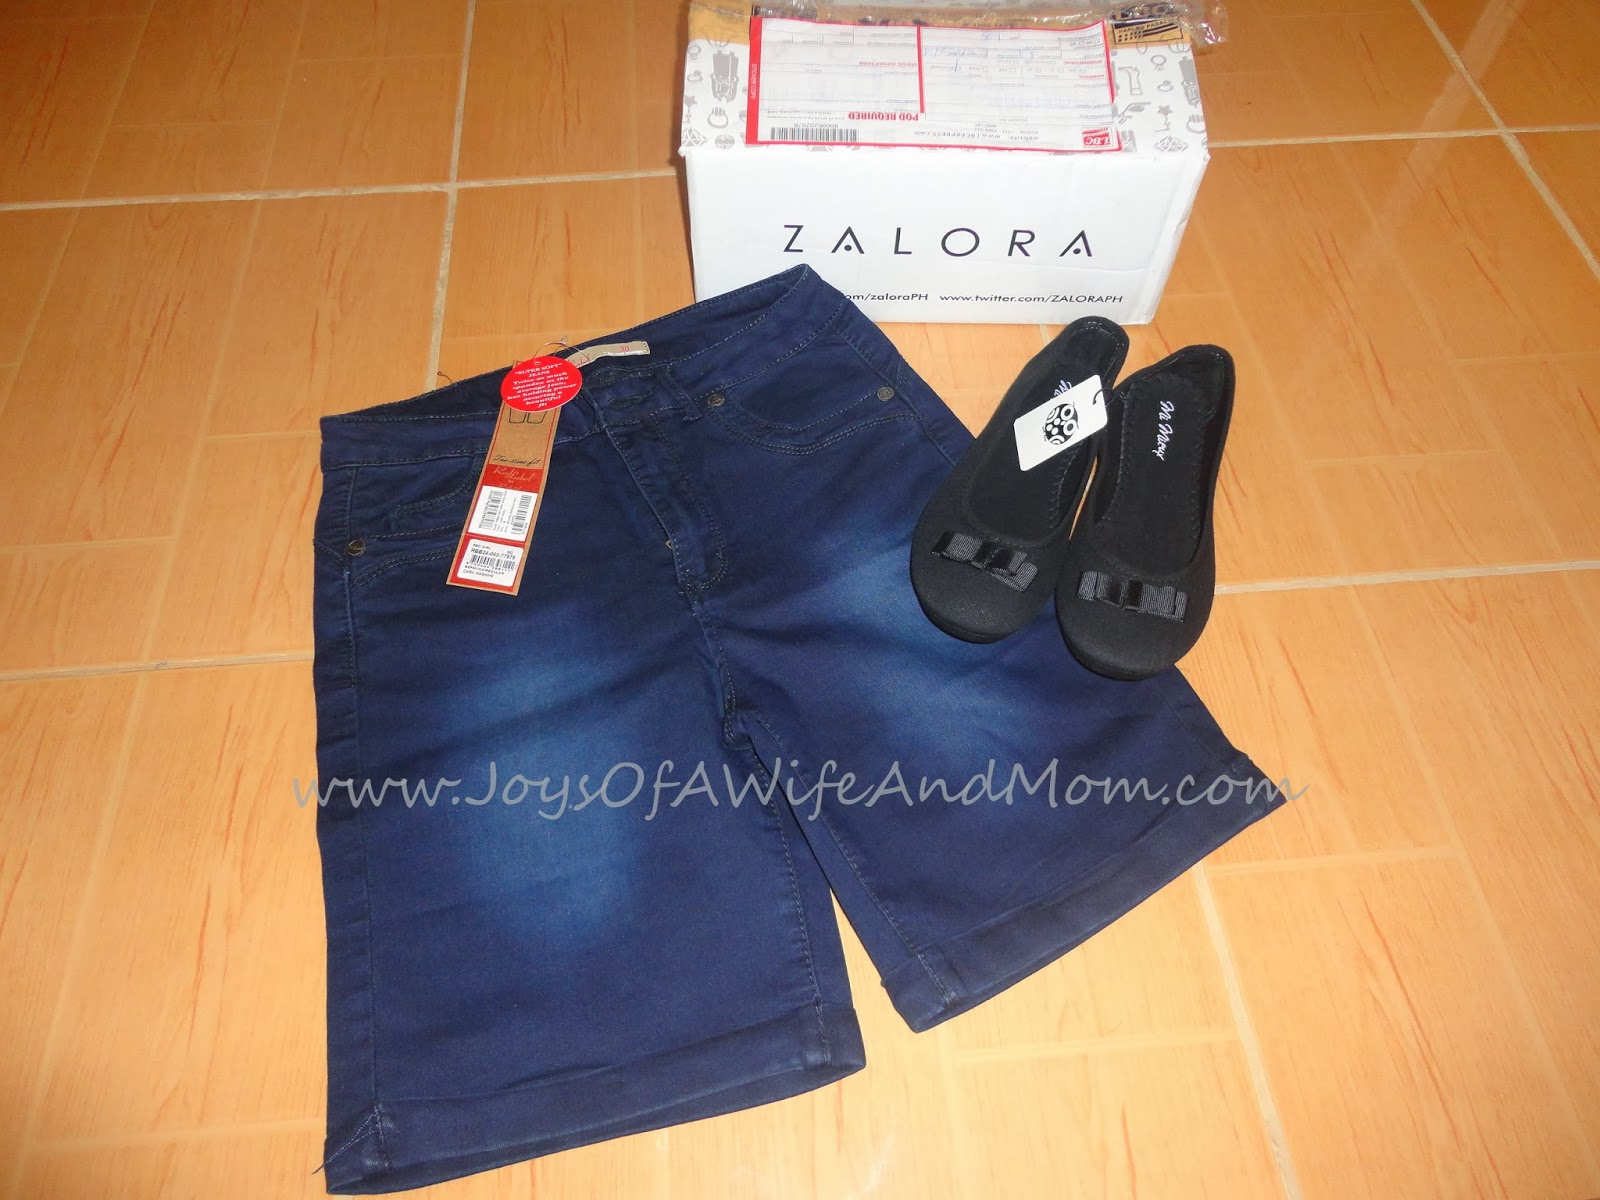 My ZALORA PH Online Shopping Experience